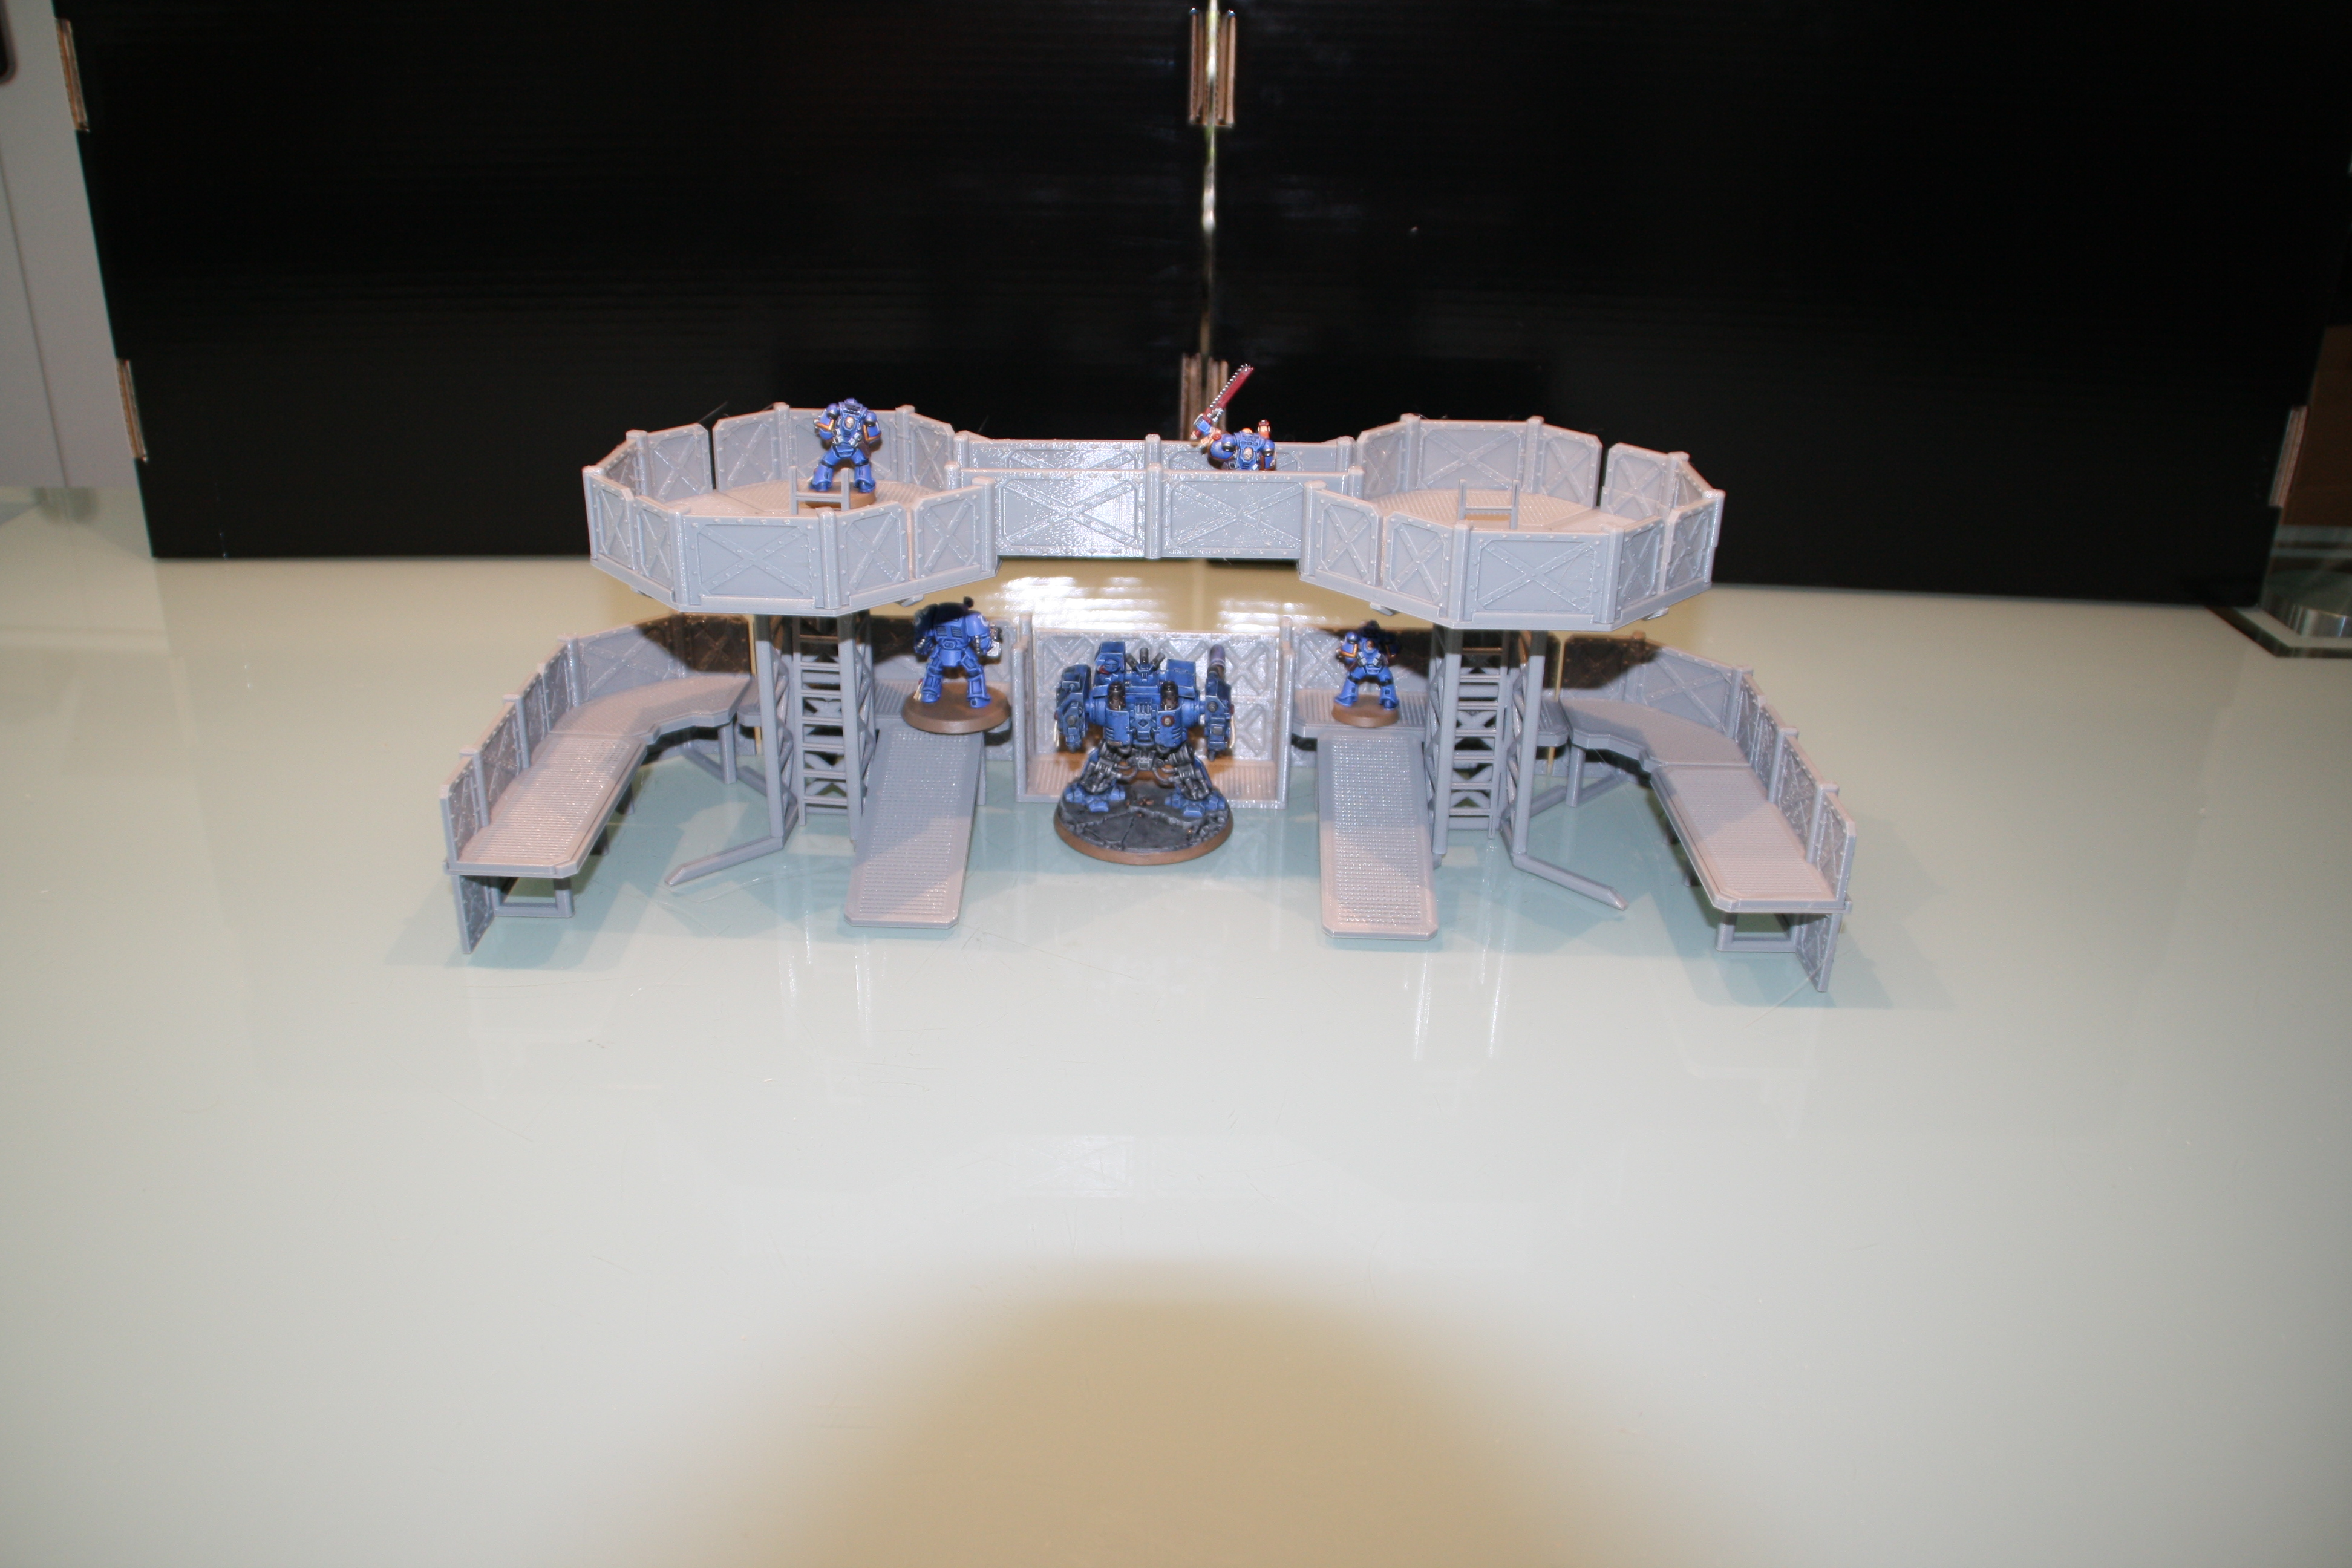 Warhammer 30K / 40K compatible Terrain - Outpost - Basic-Version